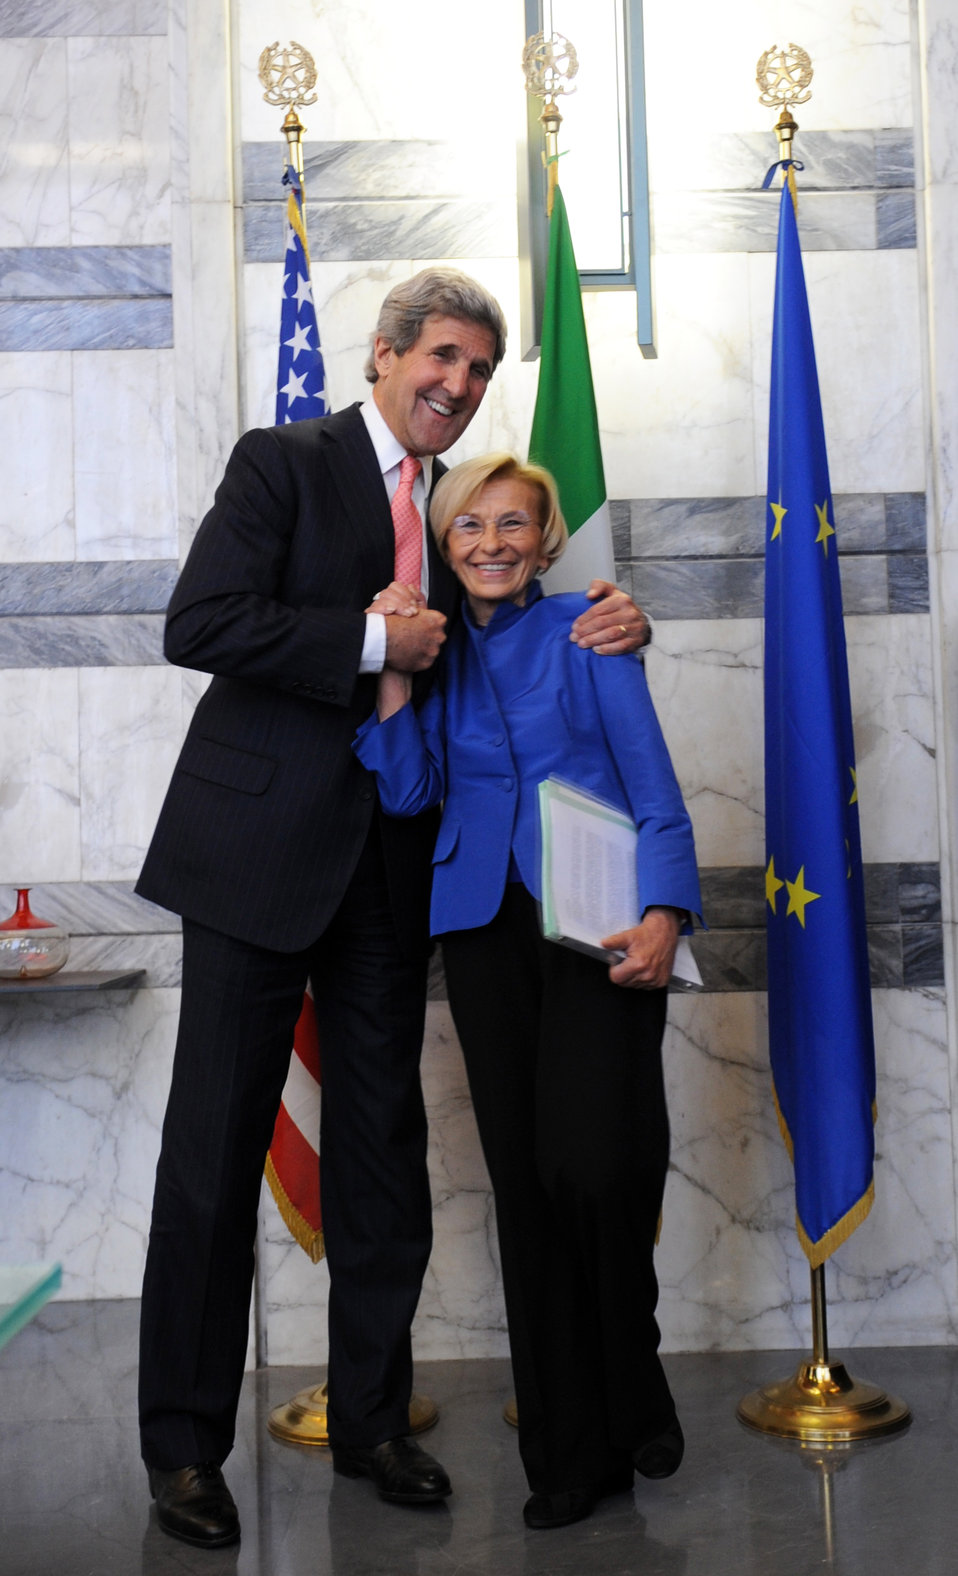 Secretary Kerry and Italian Foreign Minister Bonino Pose for a Photo